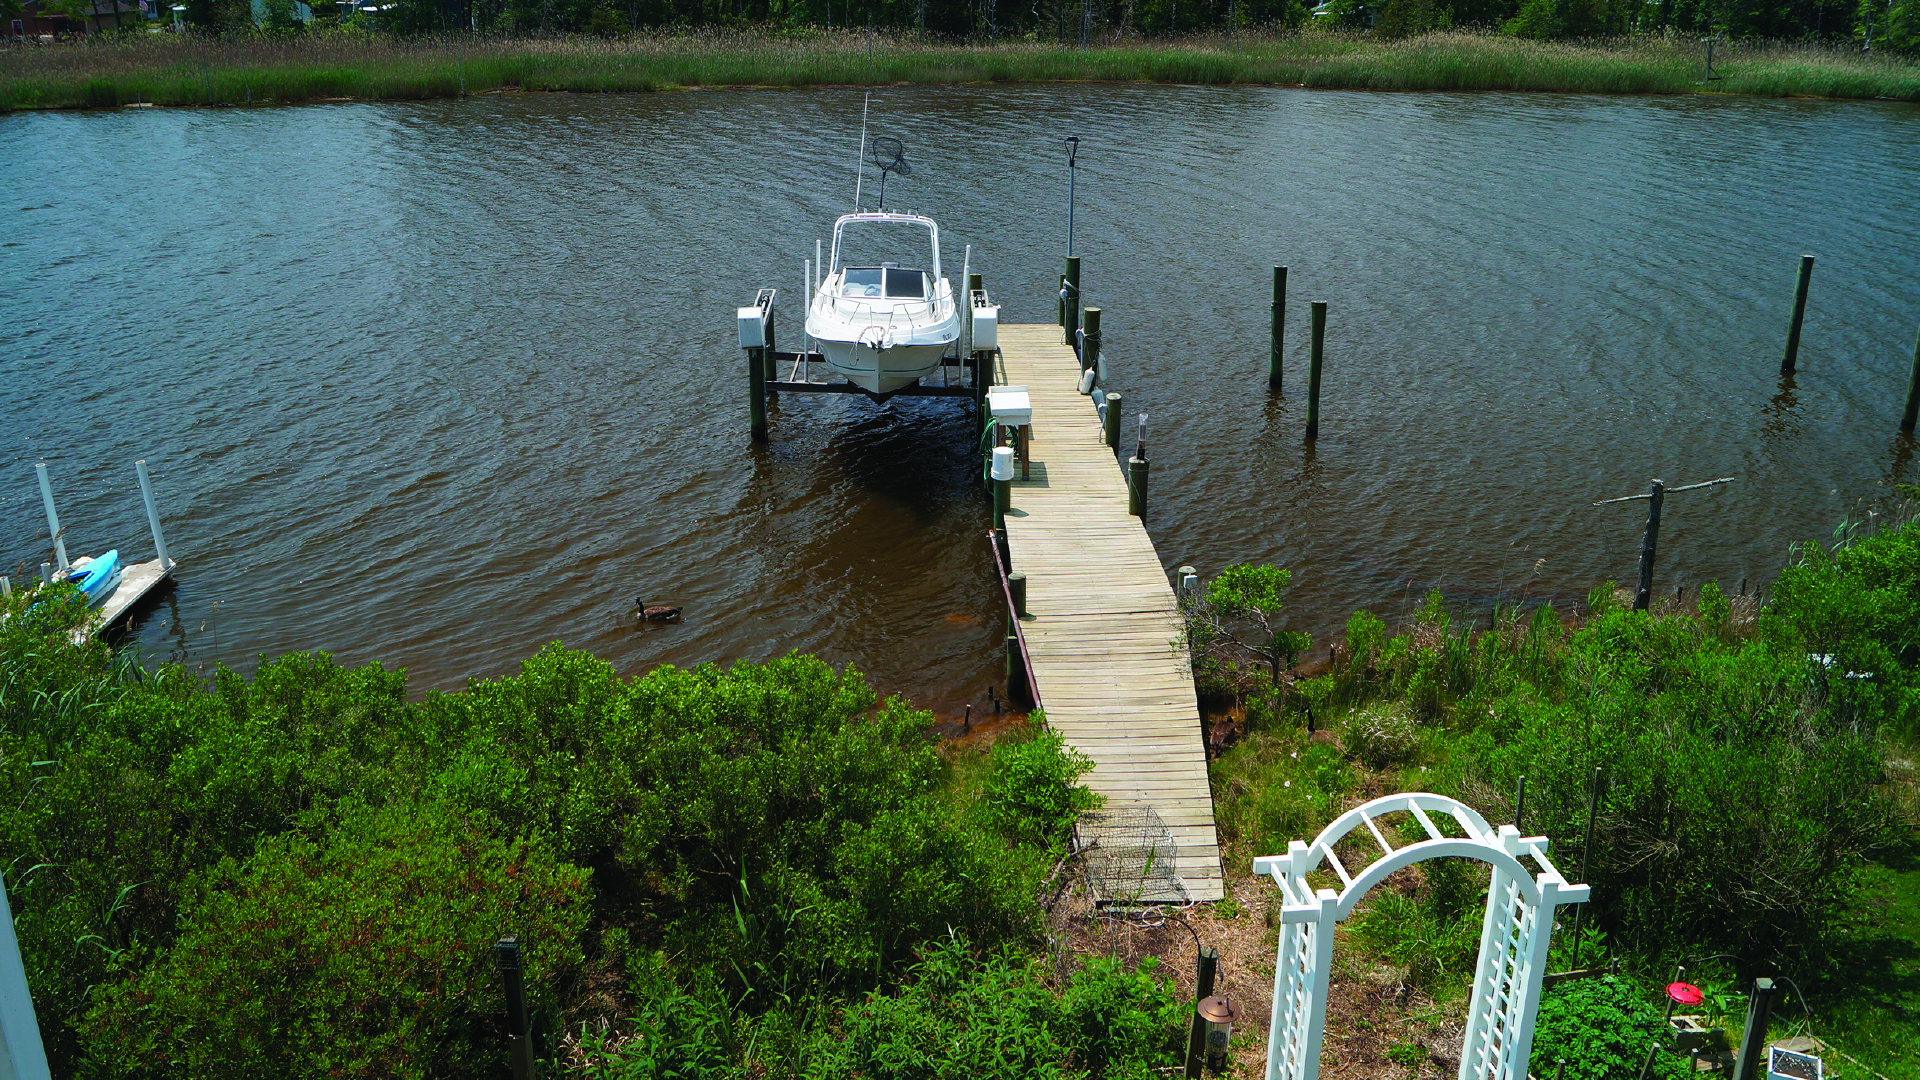 <h2>Waterfront Development Act Permitting</h2><p>The installation or alteration of docks and piers over tidally influenced waters will require a Waterfront Development Permit. </p><a href='https://www.air-land-sea.net/professional-services/waterfront-development-act-permitting/' class='btn'>Read more</a>